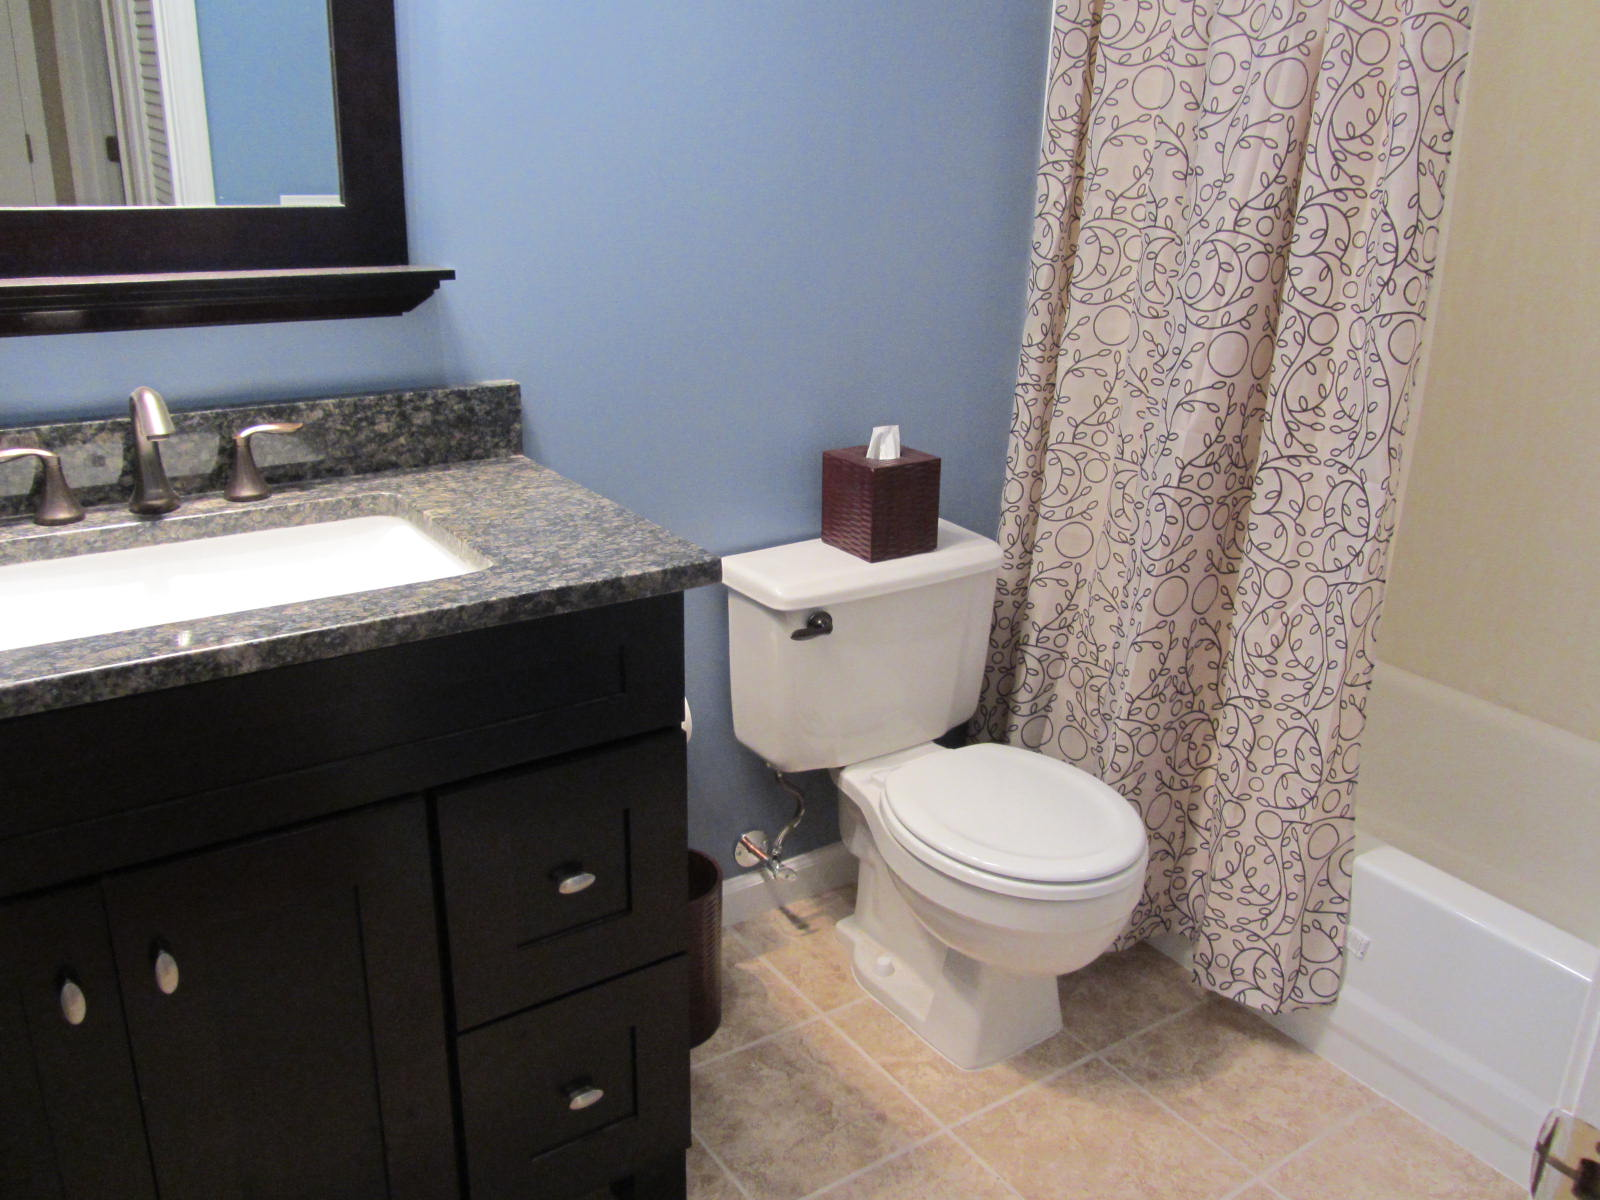 Small Bathroom Remodel On A Budget Future Expat - How much is it cost to remodel a bathroom